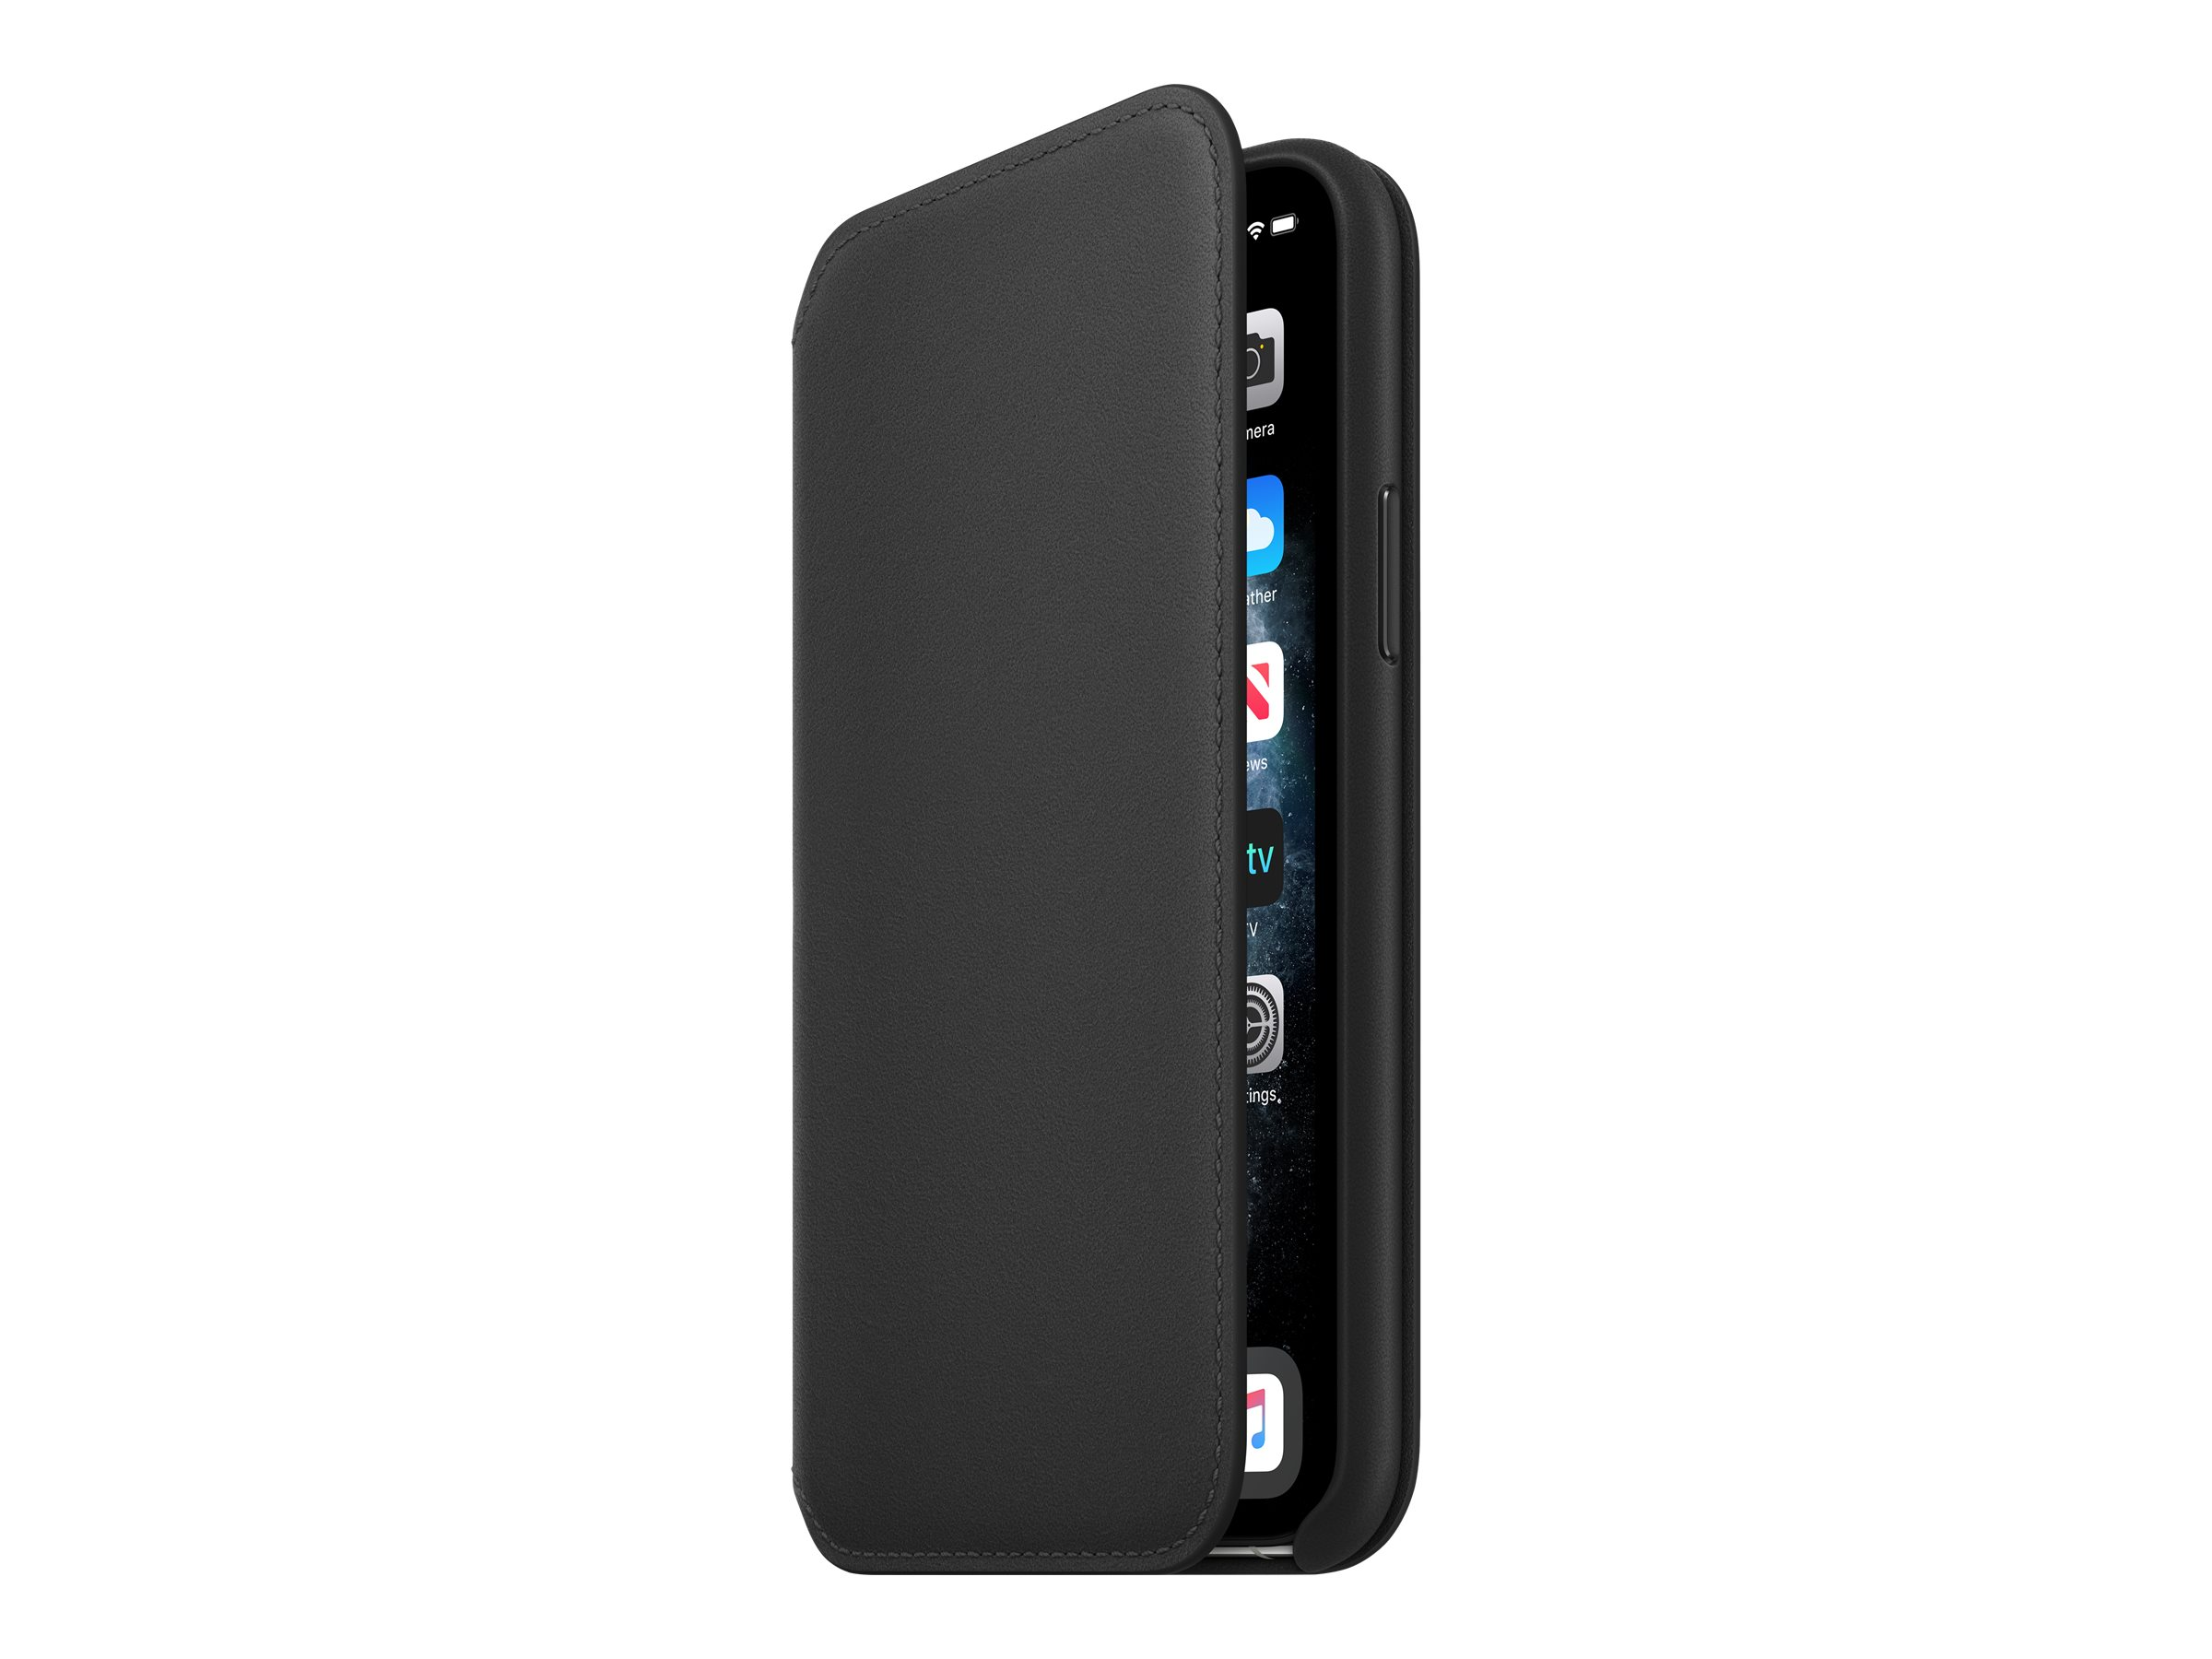 Apple Folio - flip cover for cell phone